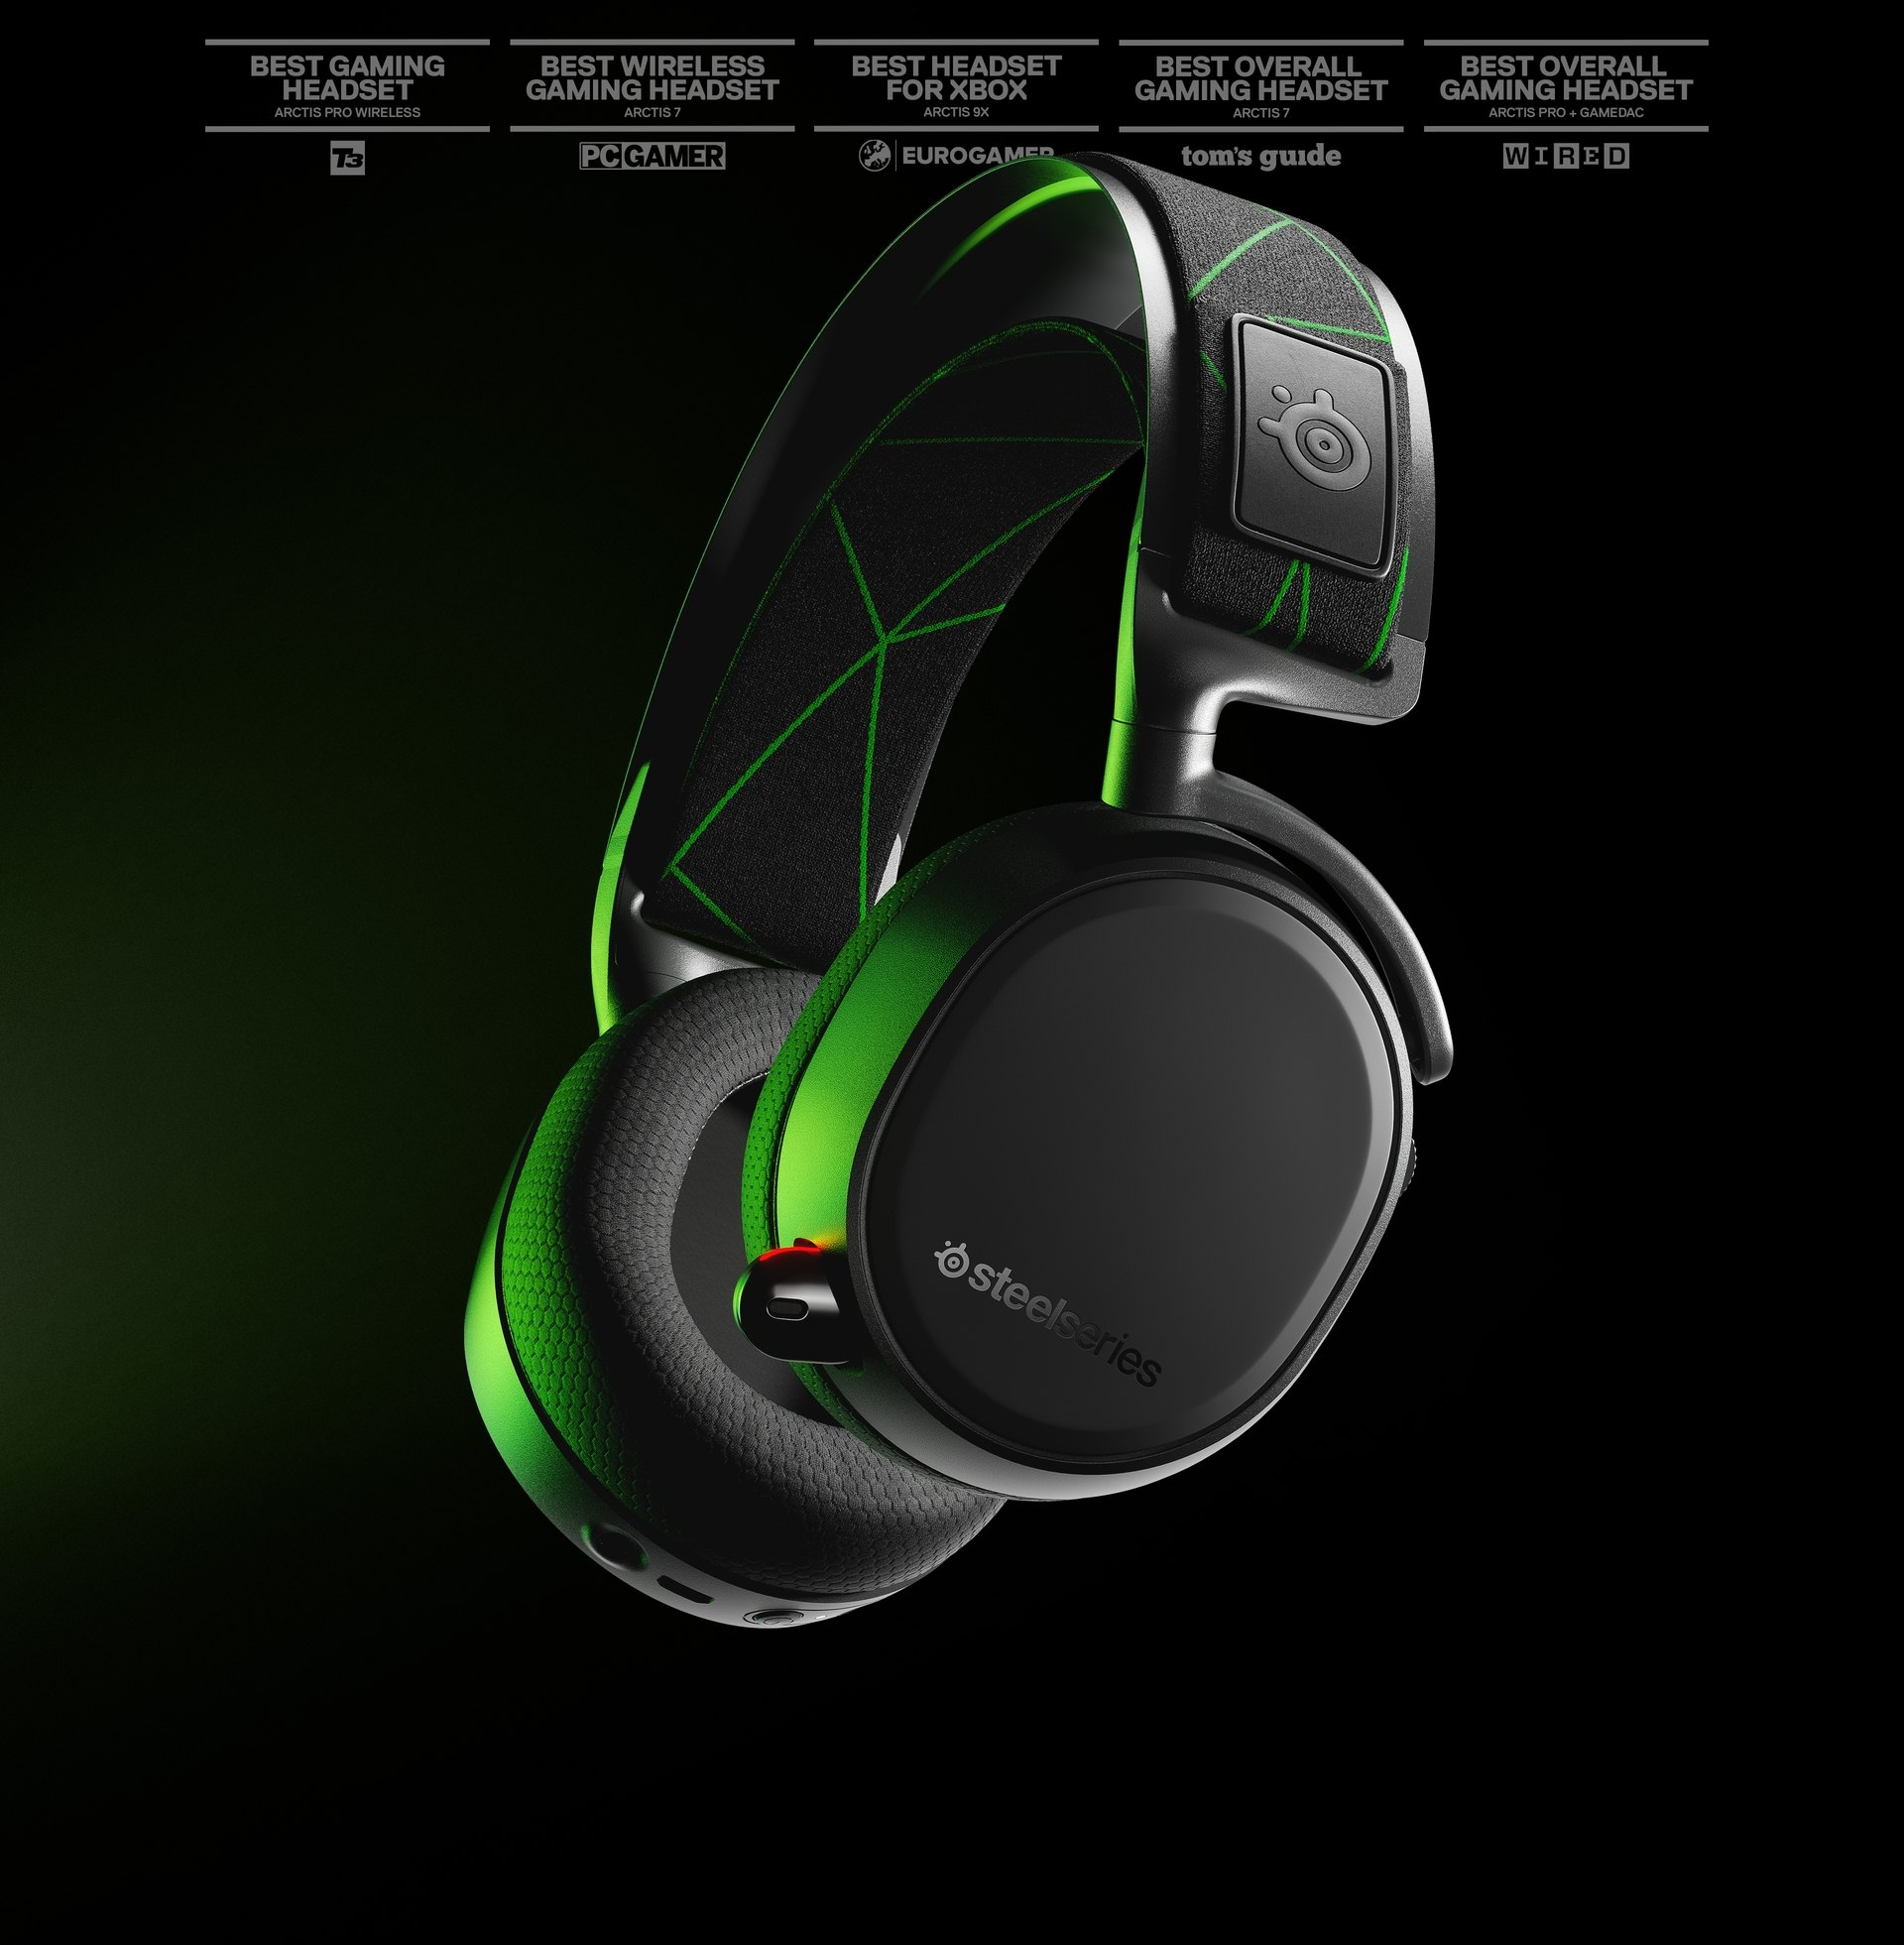 The Most Awarded Wireless Gaming Headset Comes to Xbox